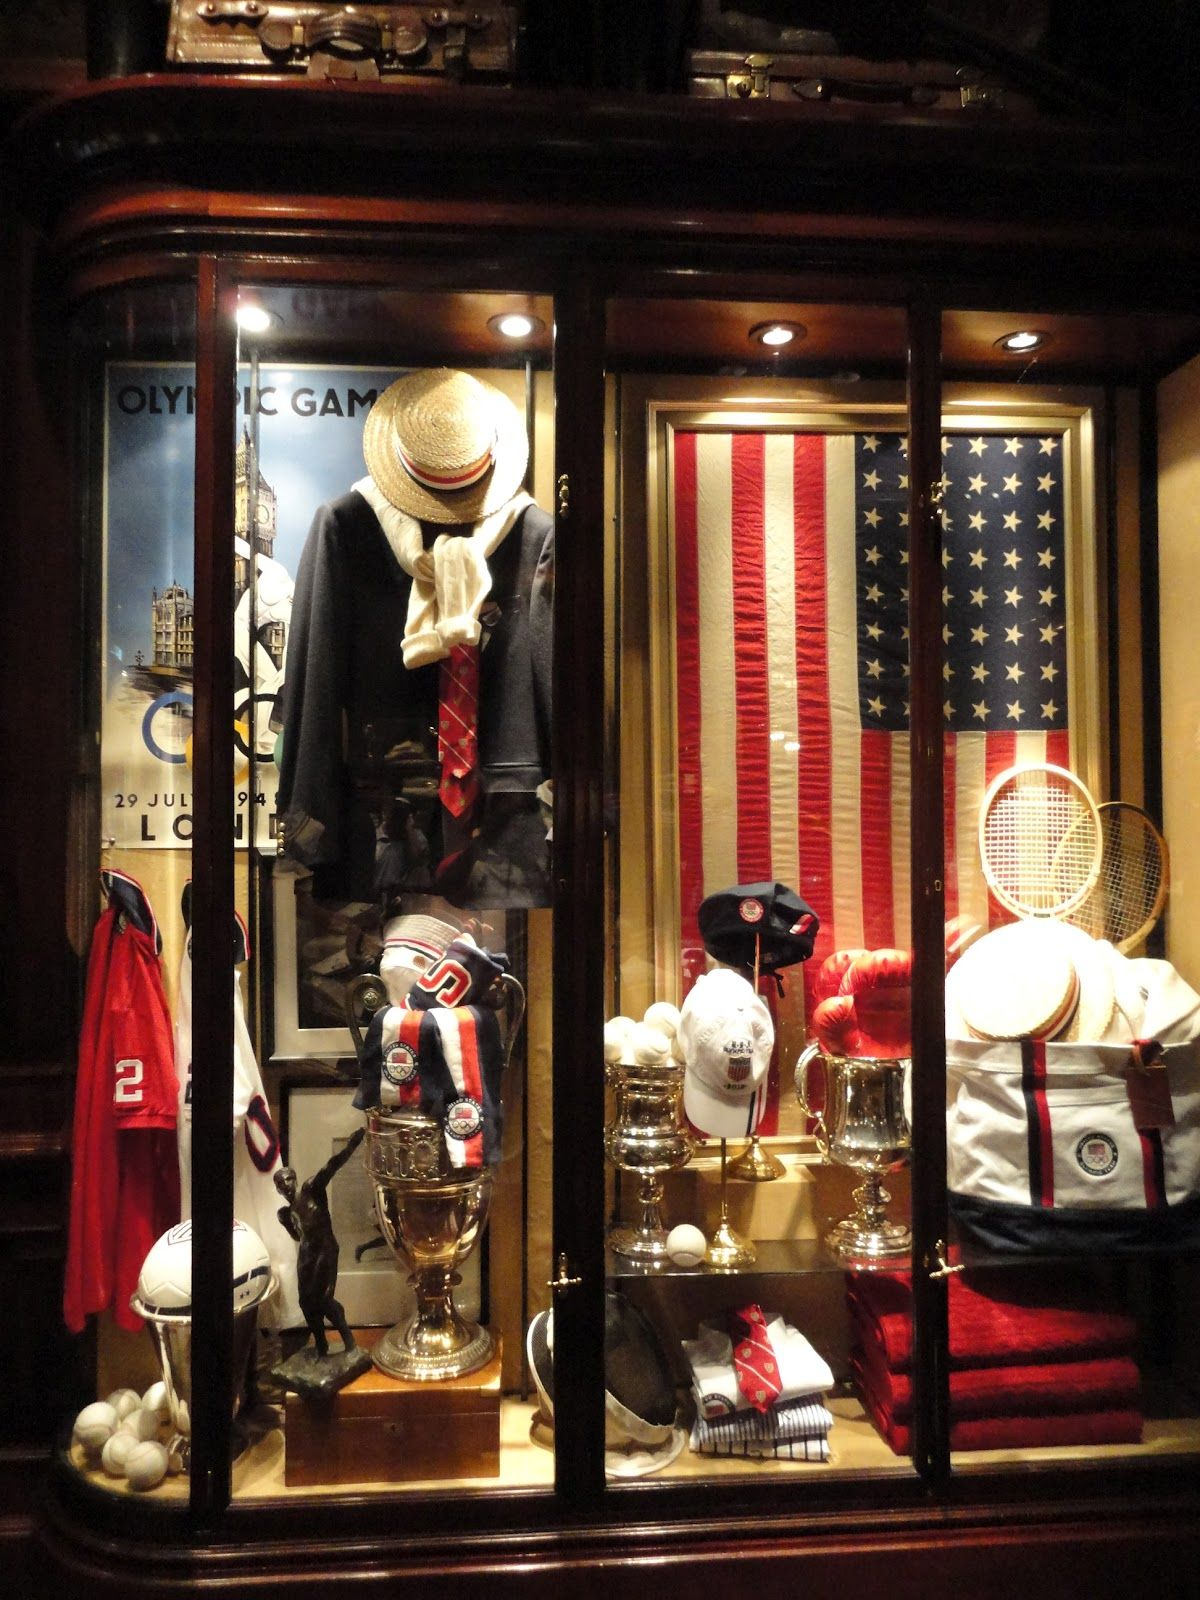 ralph lauren clothing store ralph lauren clothing store